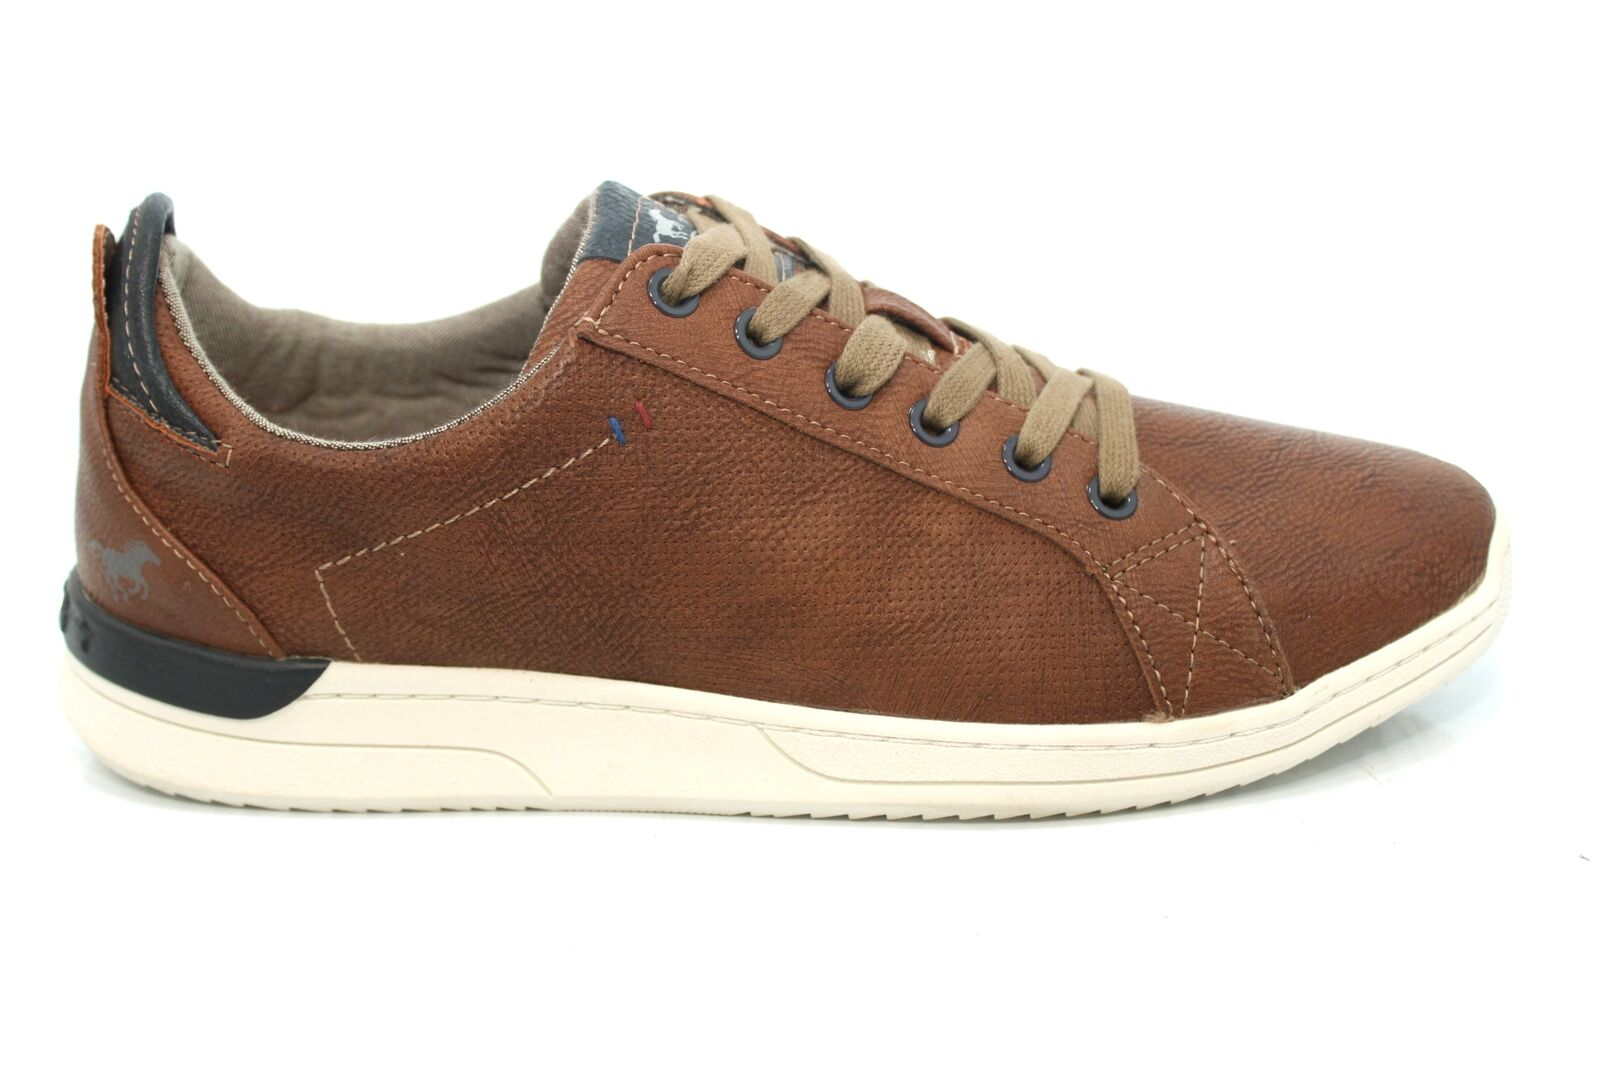 Mens Mustang Tan Flat Classic Casual Lace Up Trainers Shoes